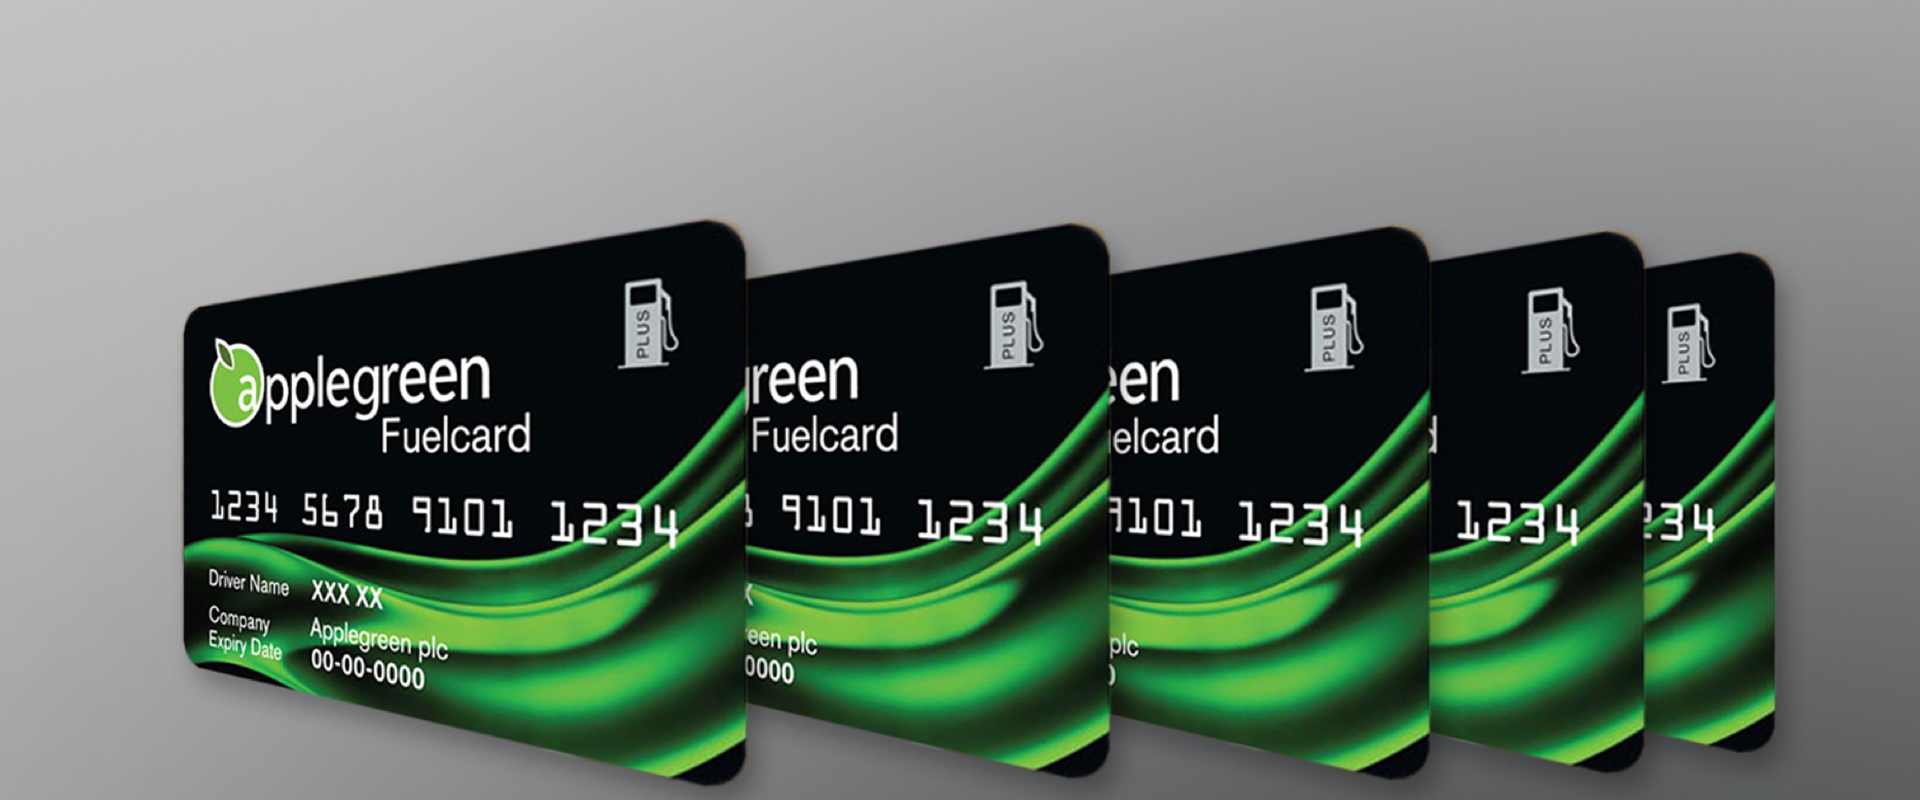 Fuel Card - Applegreen UK